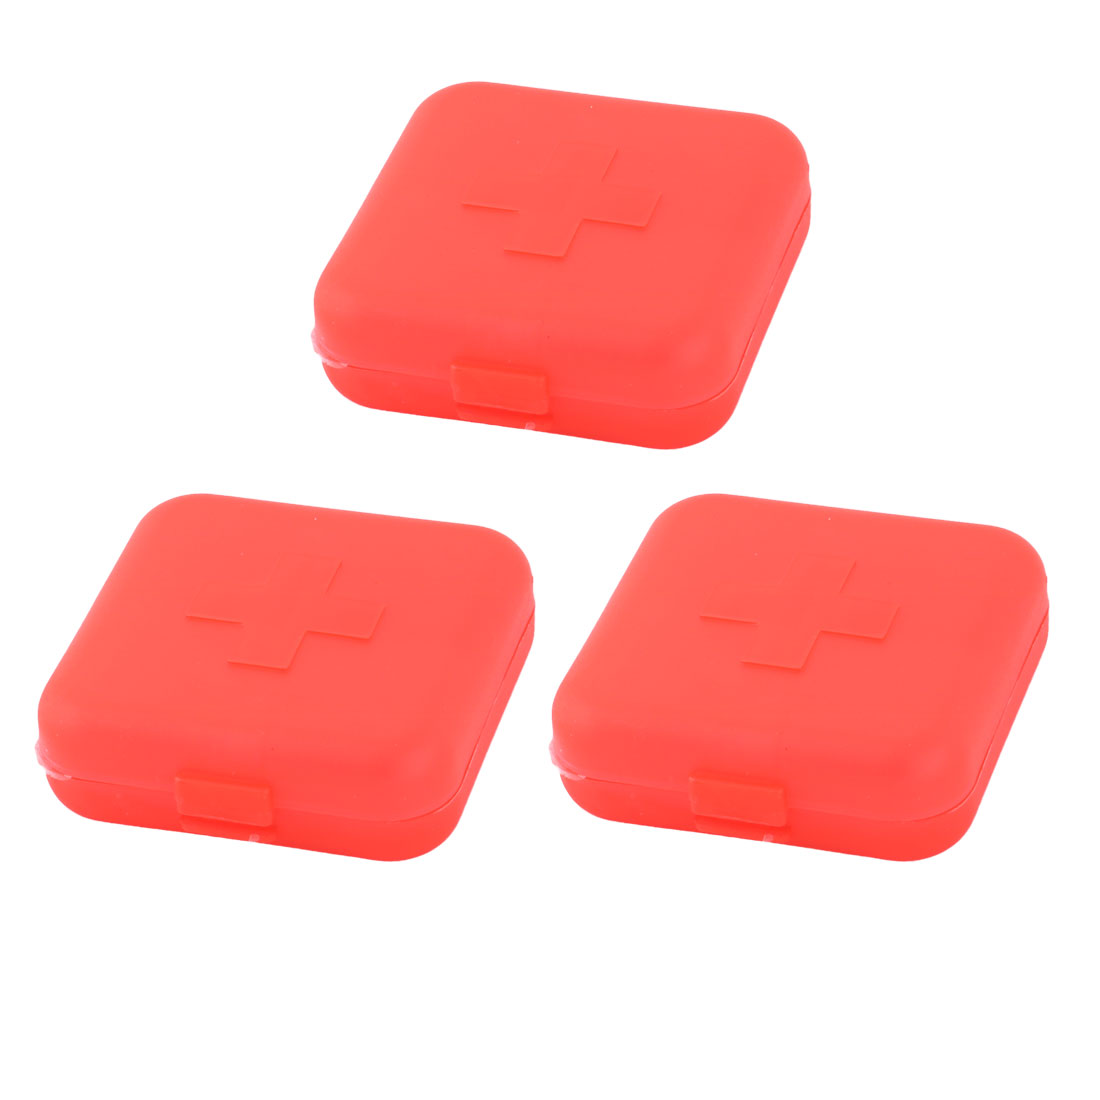 Hiking Plastic 4 Compartments Medicine Pill Holder Storage Box Case Red 3pcs